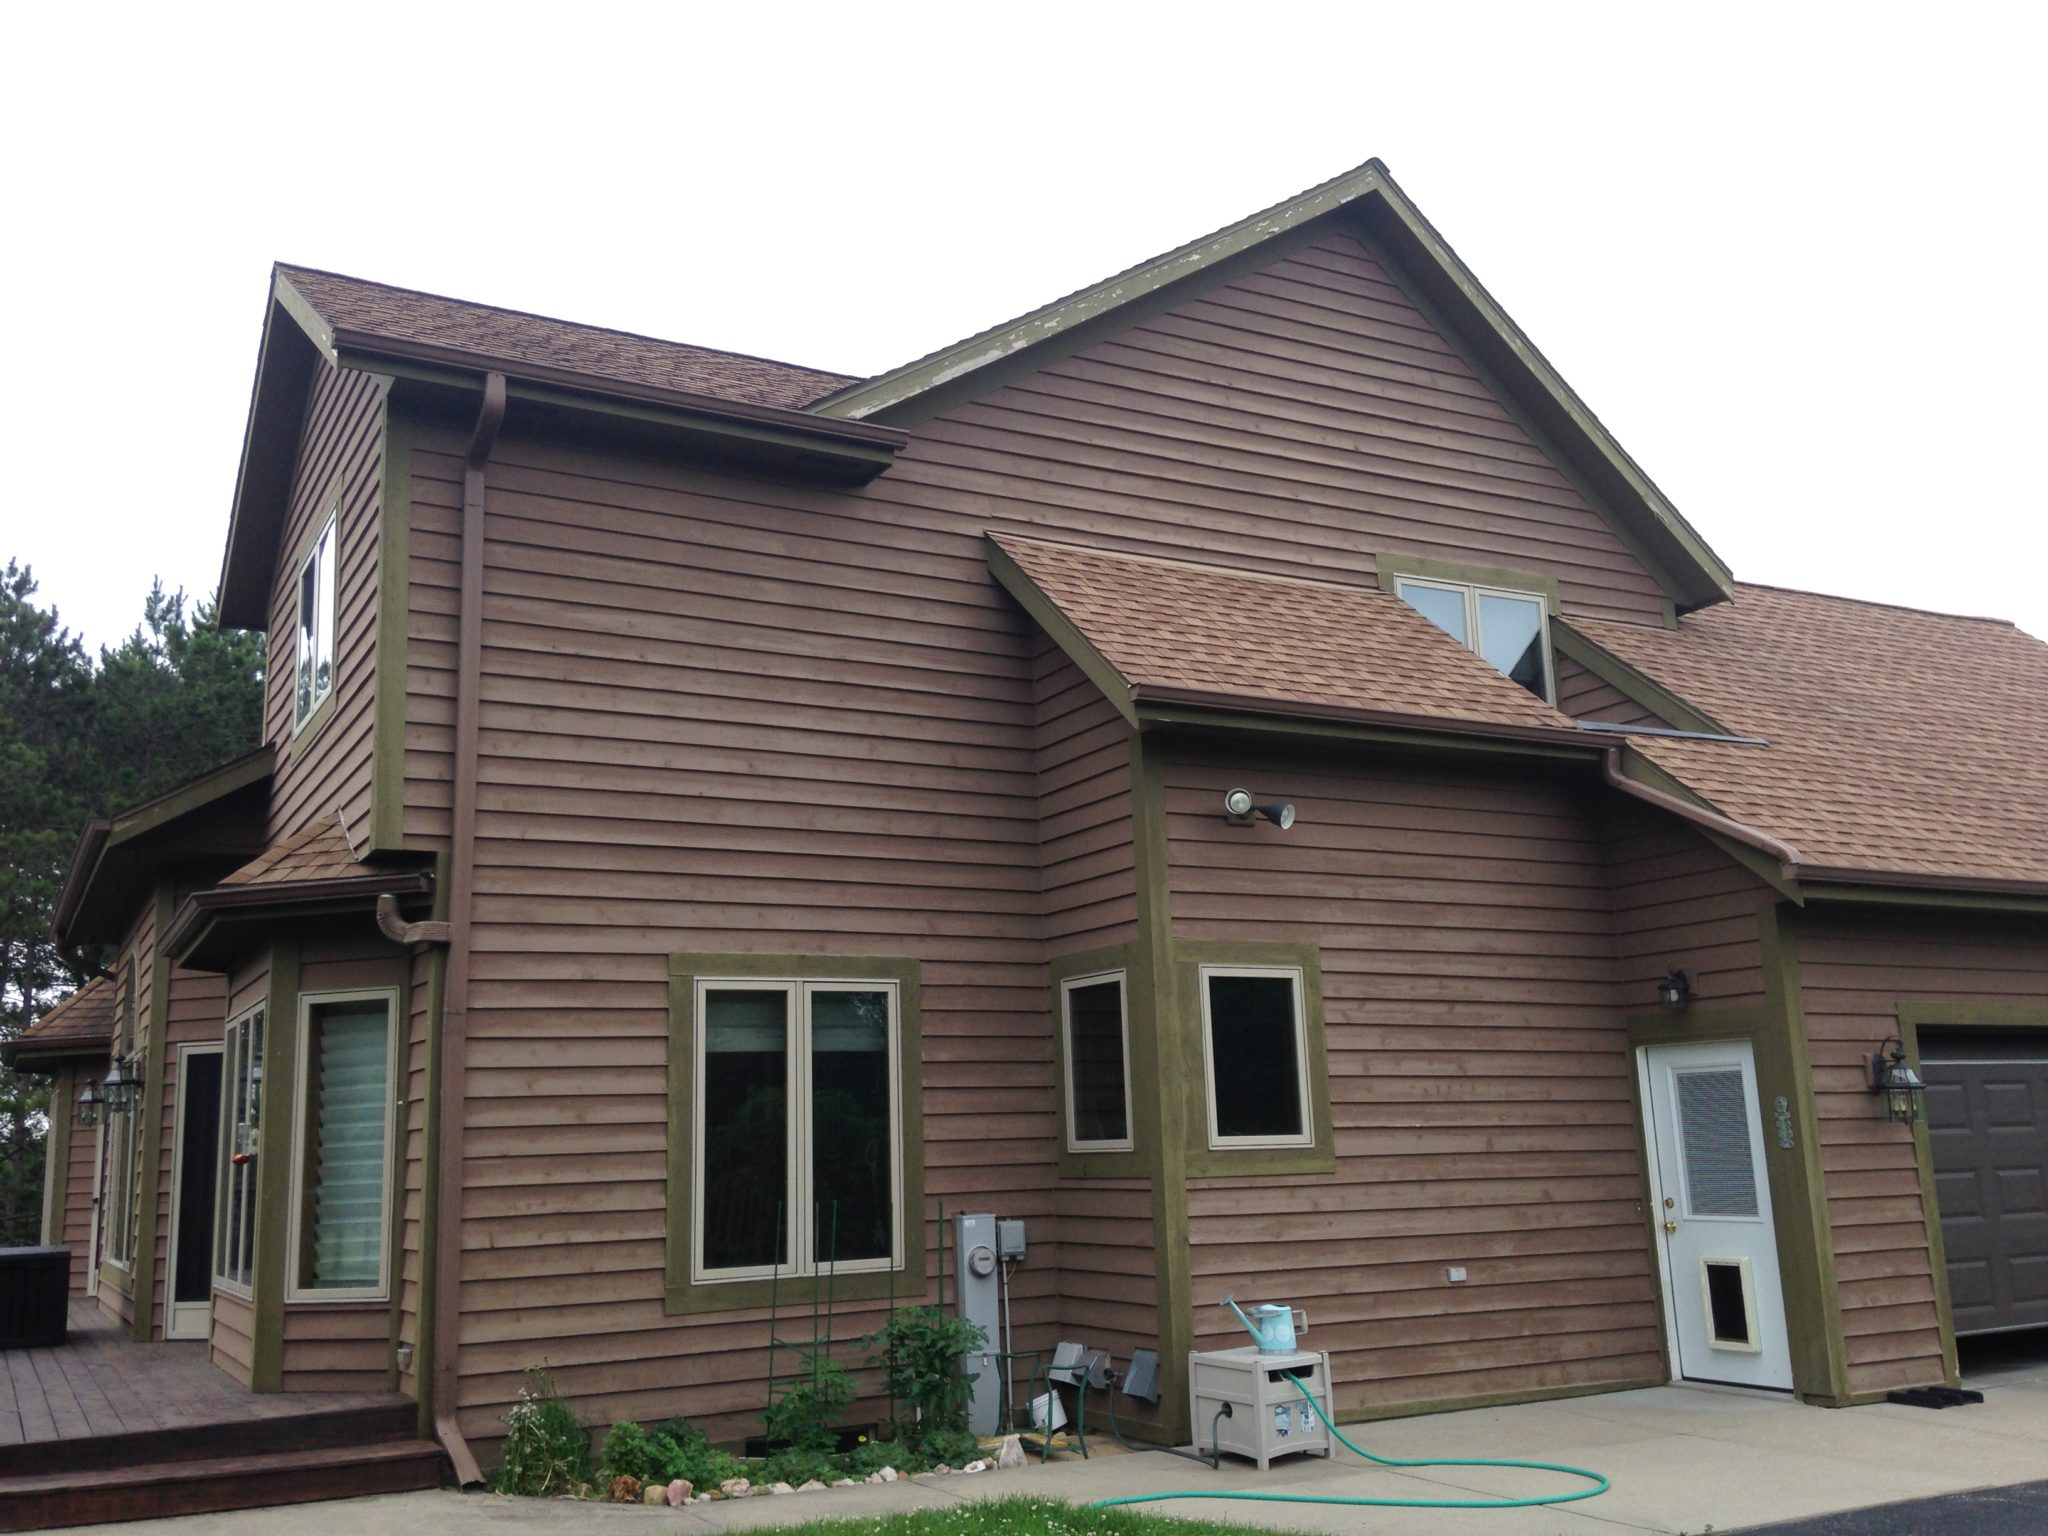 Kevin Schmitt Siding & Insulation, Inc.